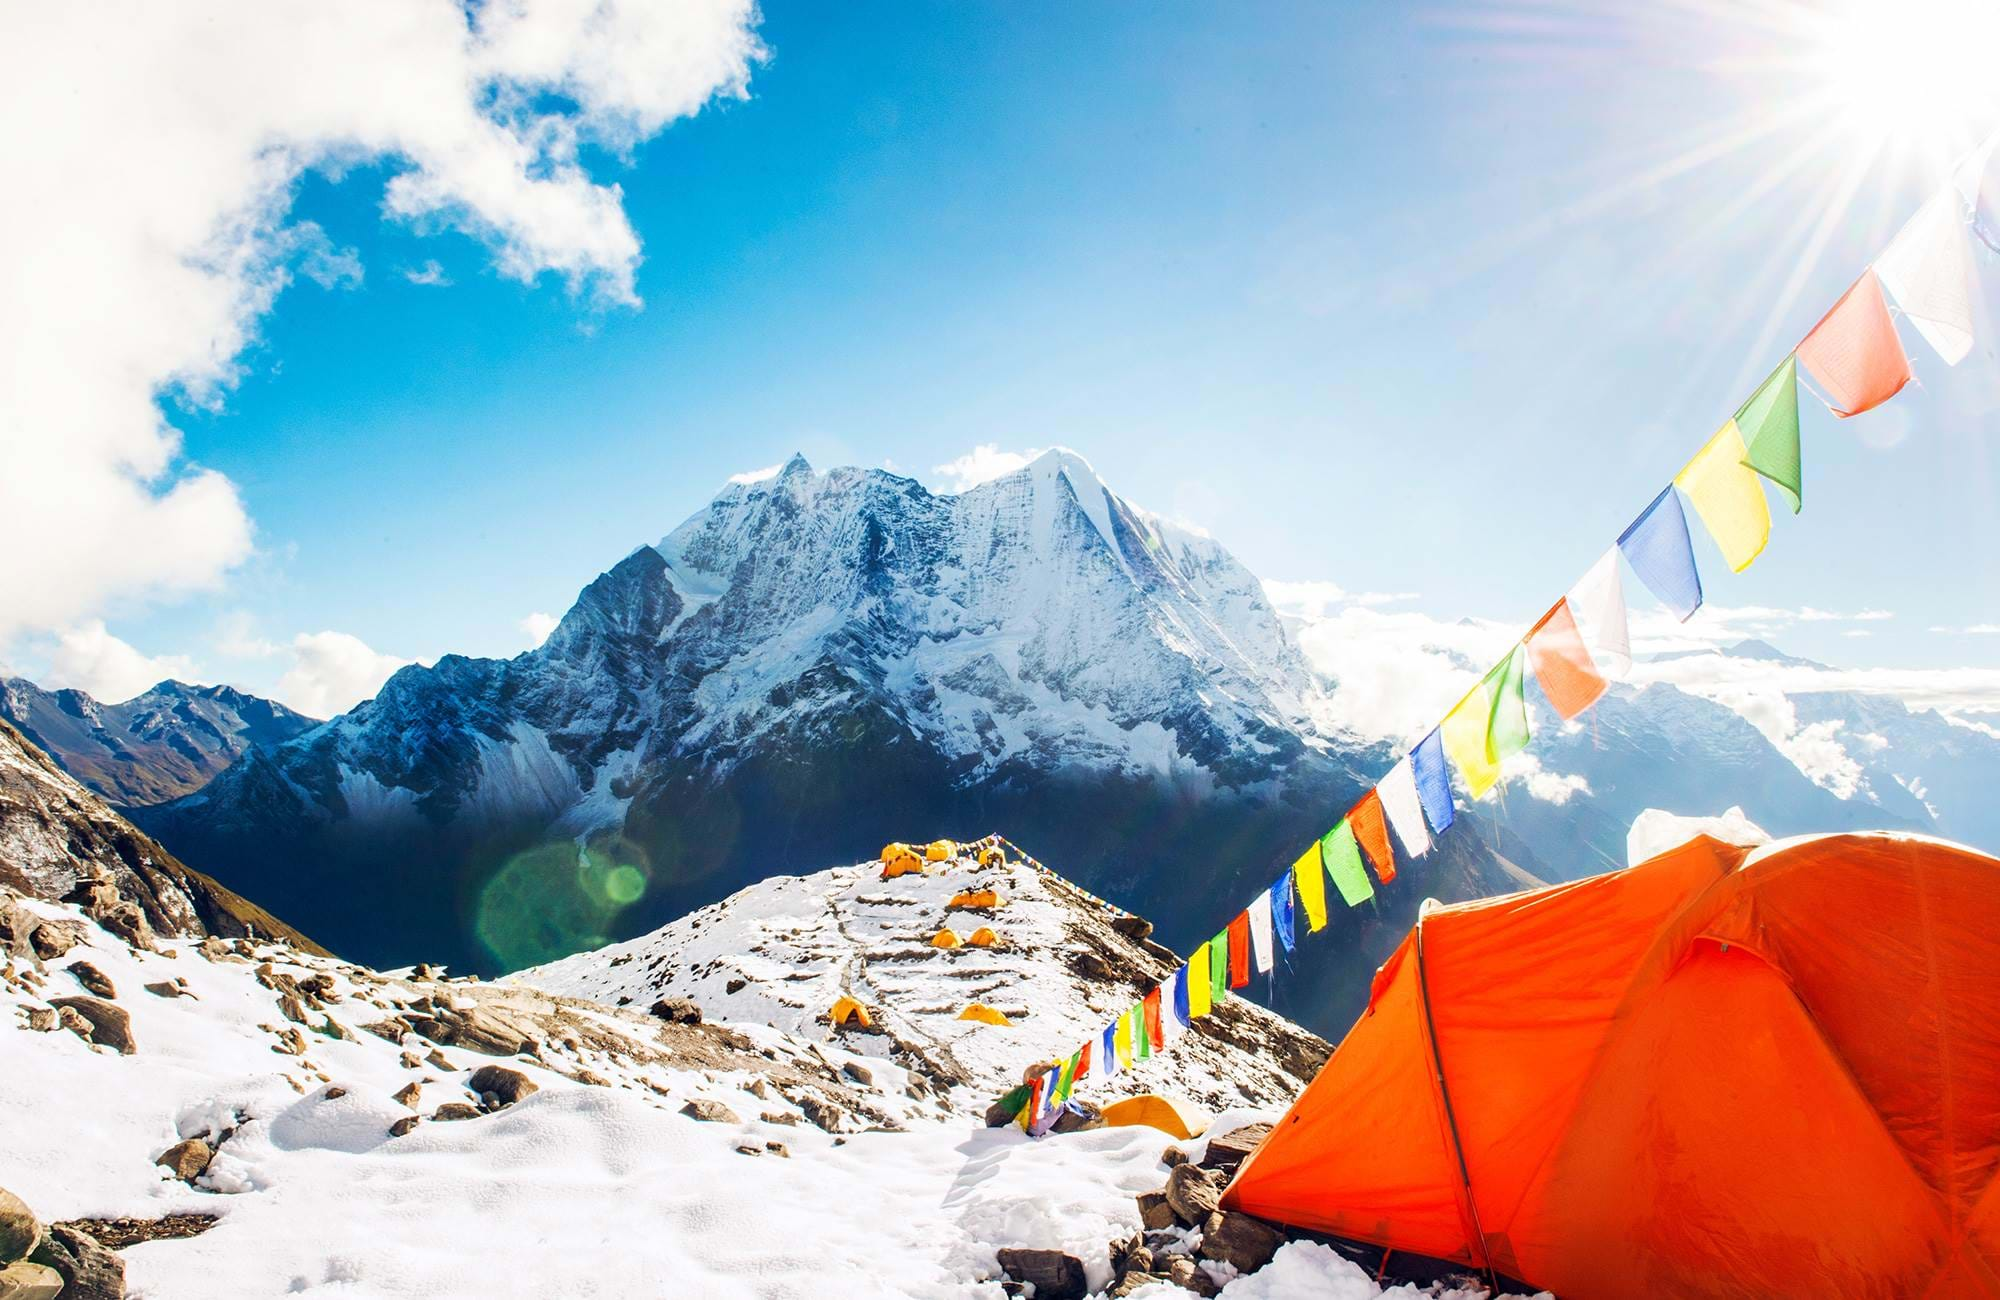 Tenten in de sneeuw Himalaya | Rondreis Mount Everest